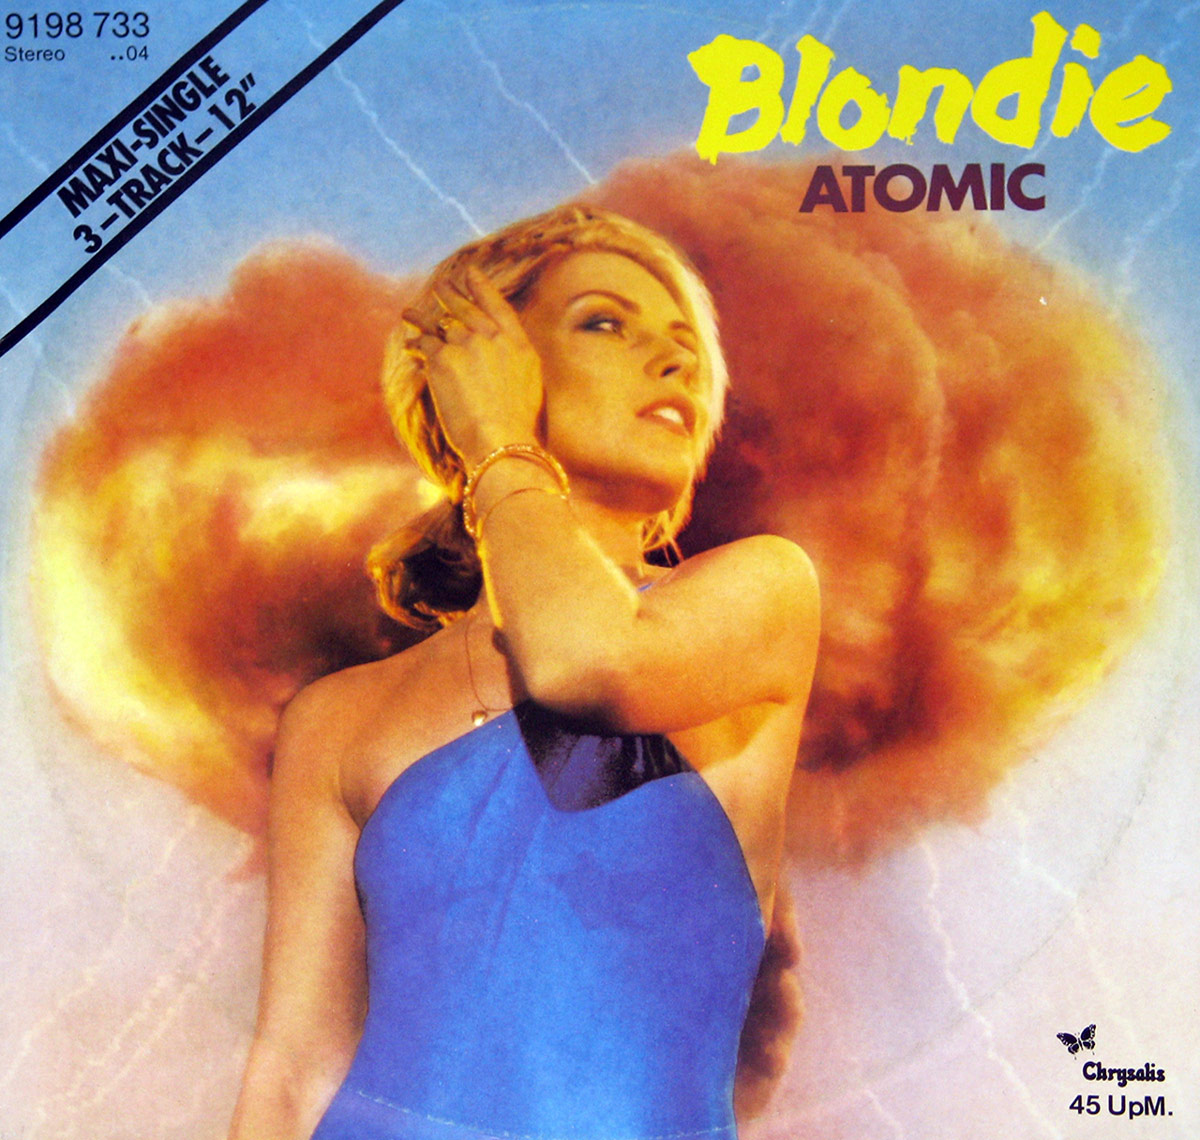 large photo of the album front cover of: Blondie - Atomic